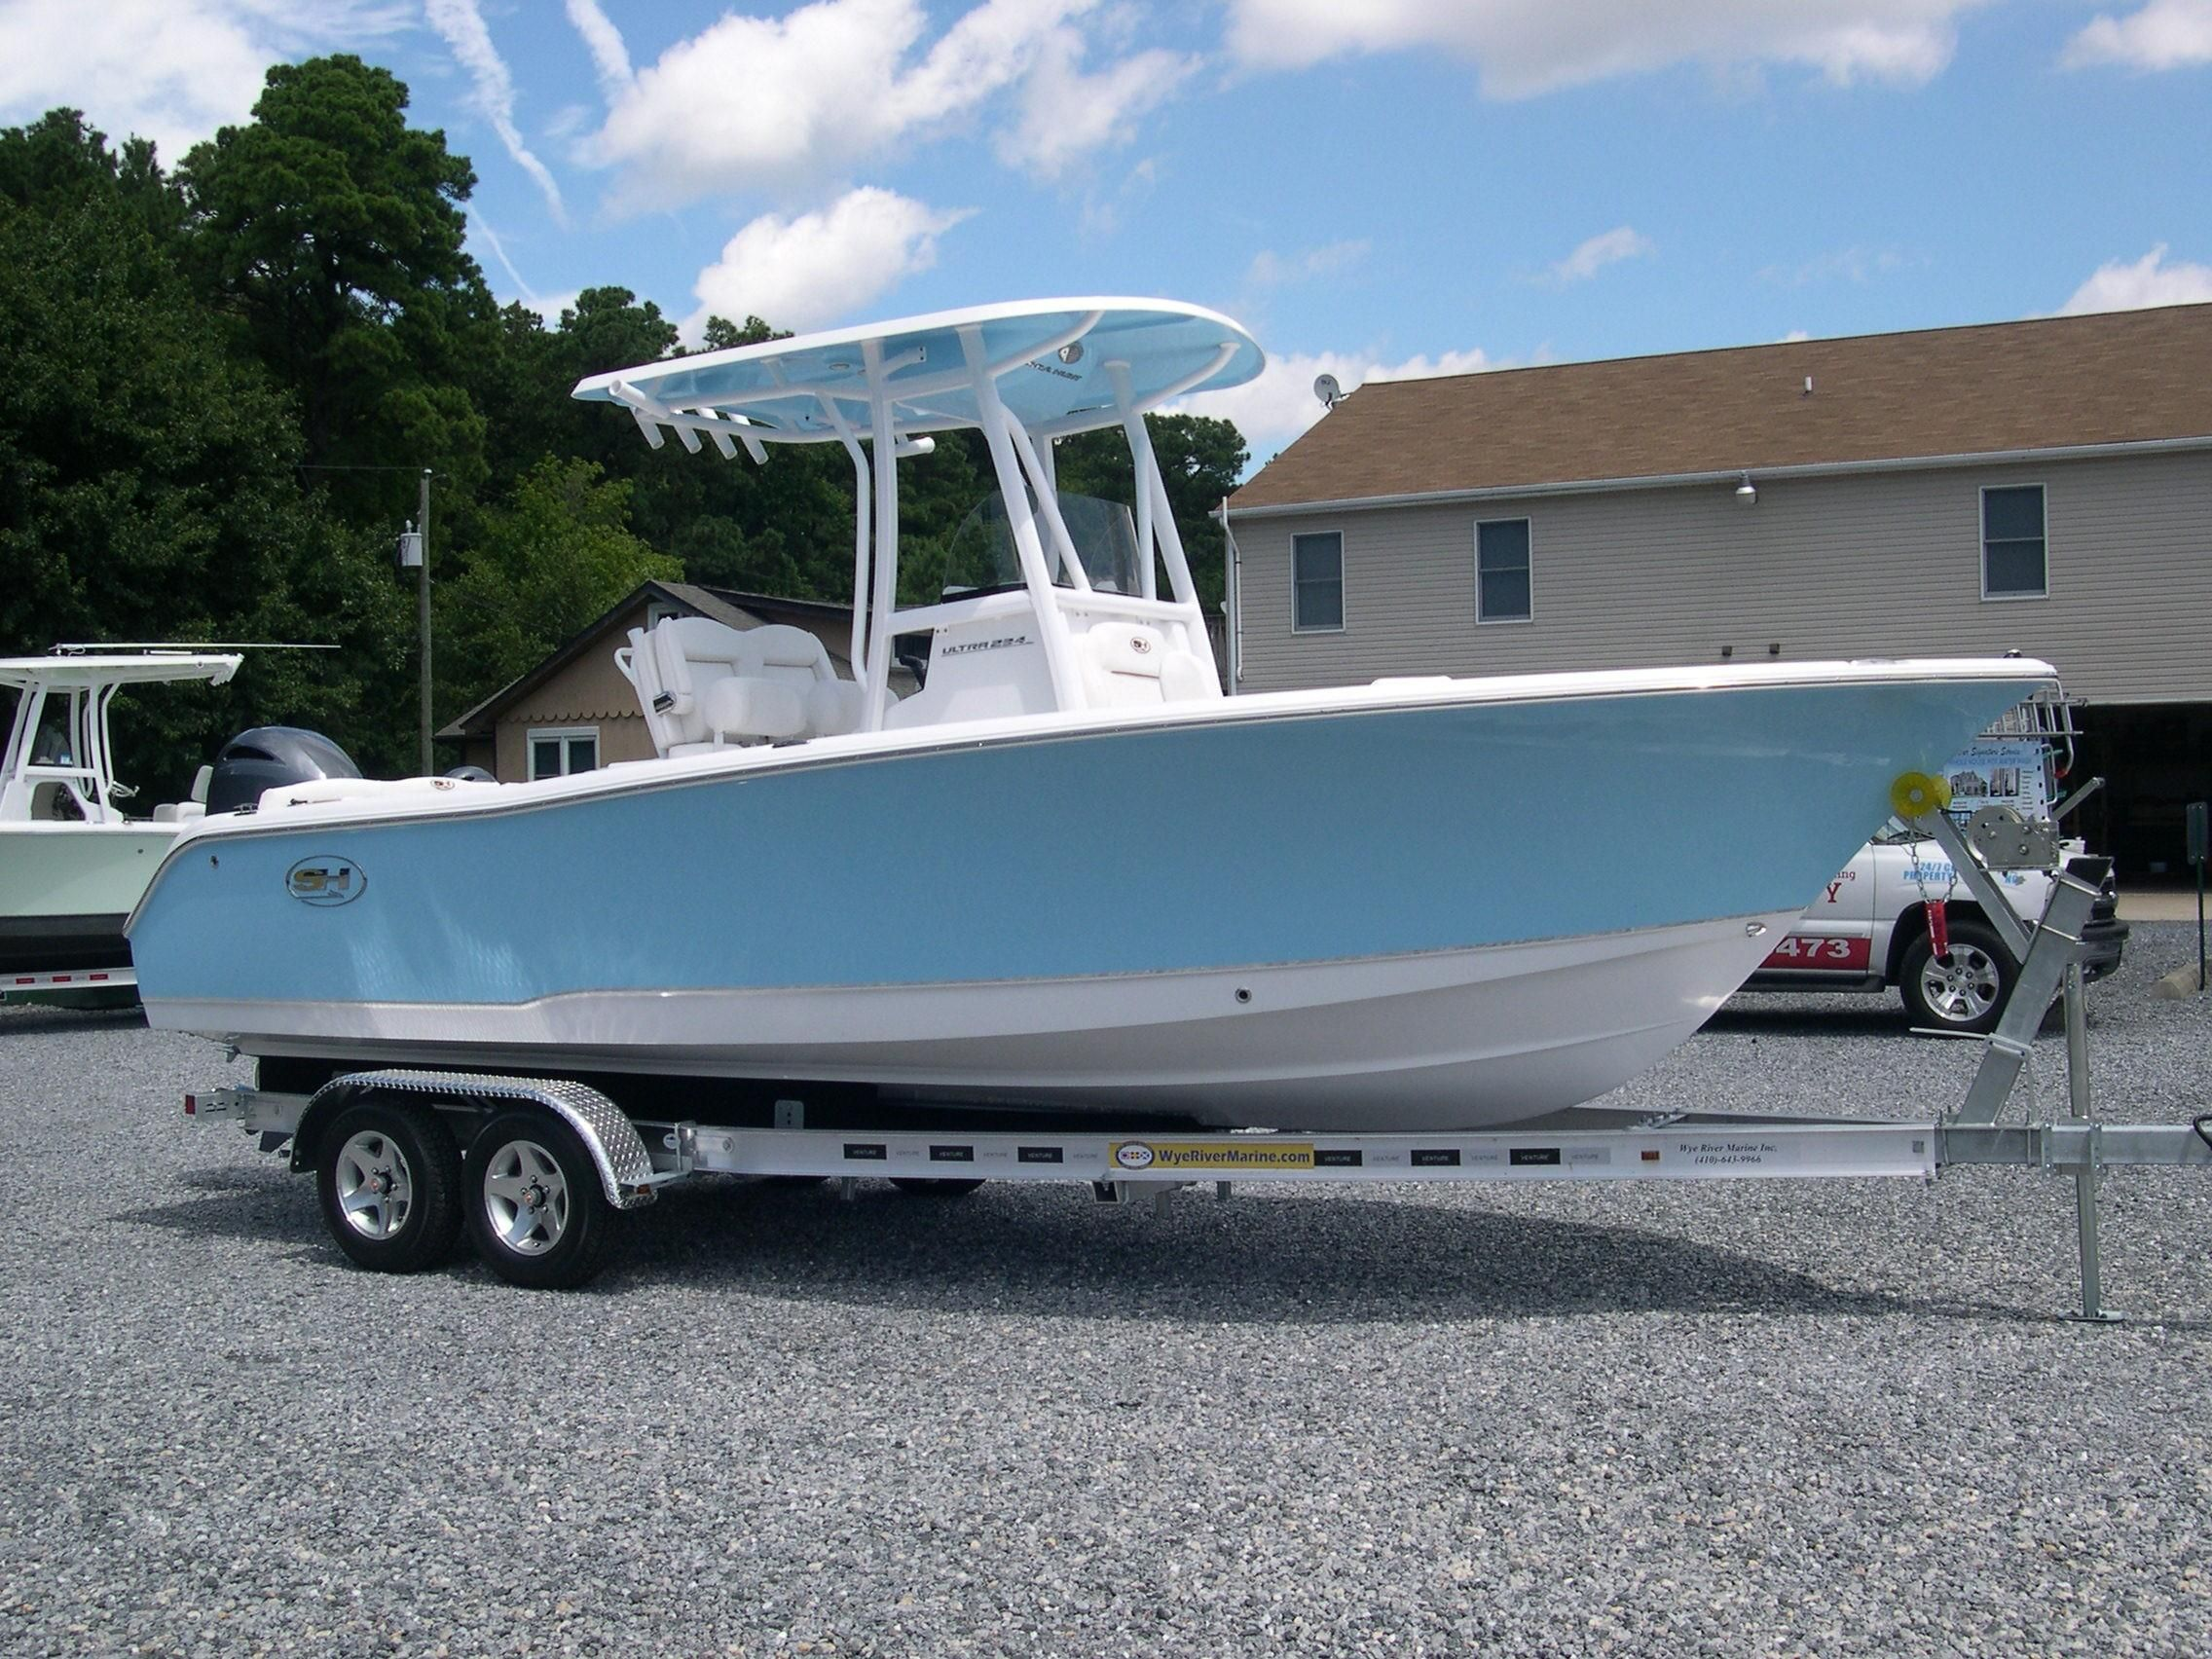 2019 Sea Hunt 234 Ultra Captains Chairs Power Boat For Sale -